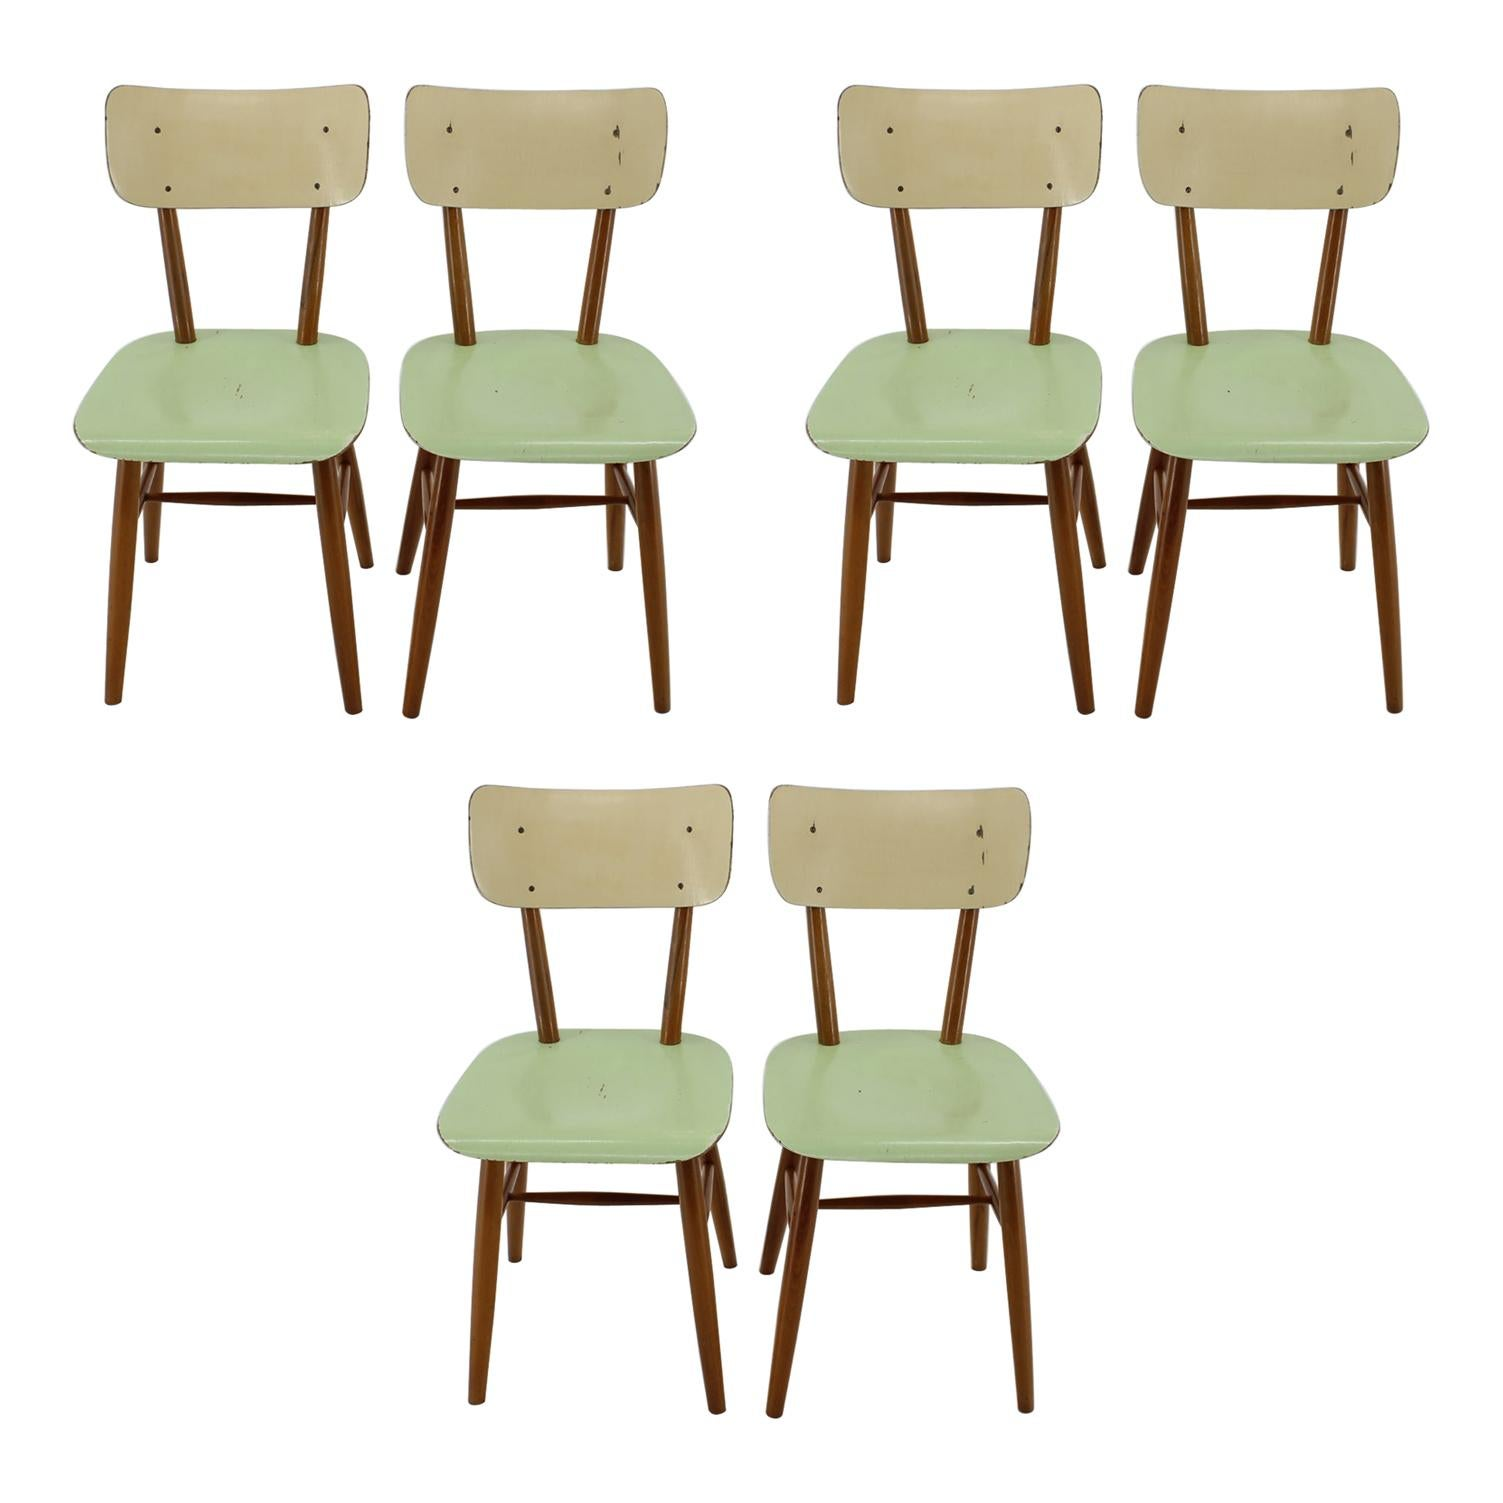 1960s Set of 6 Dining Chairs,Czechoslovakia